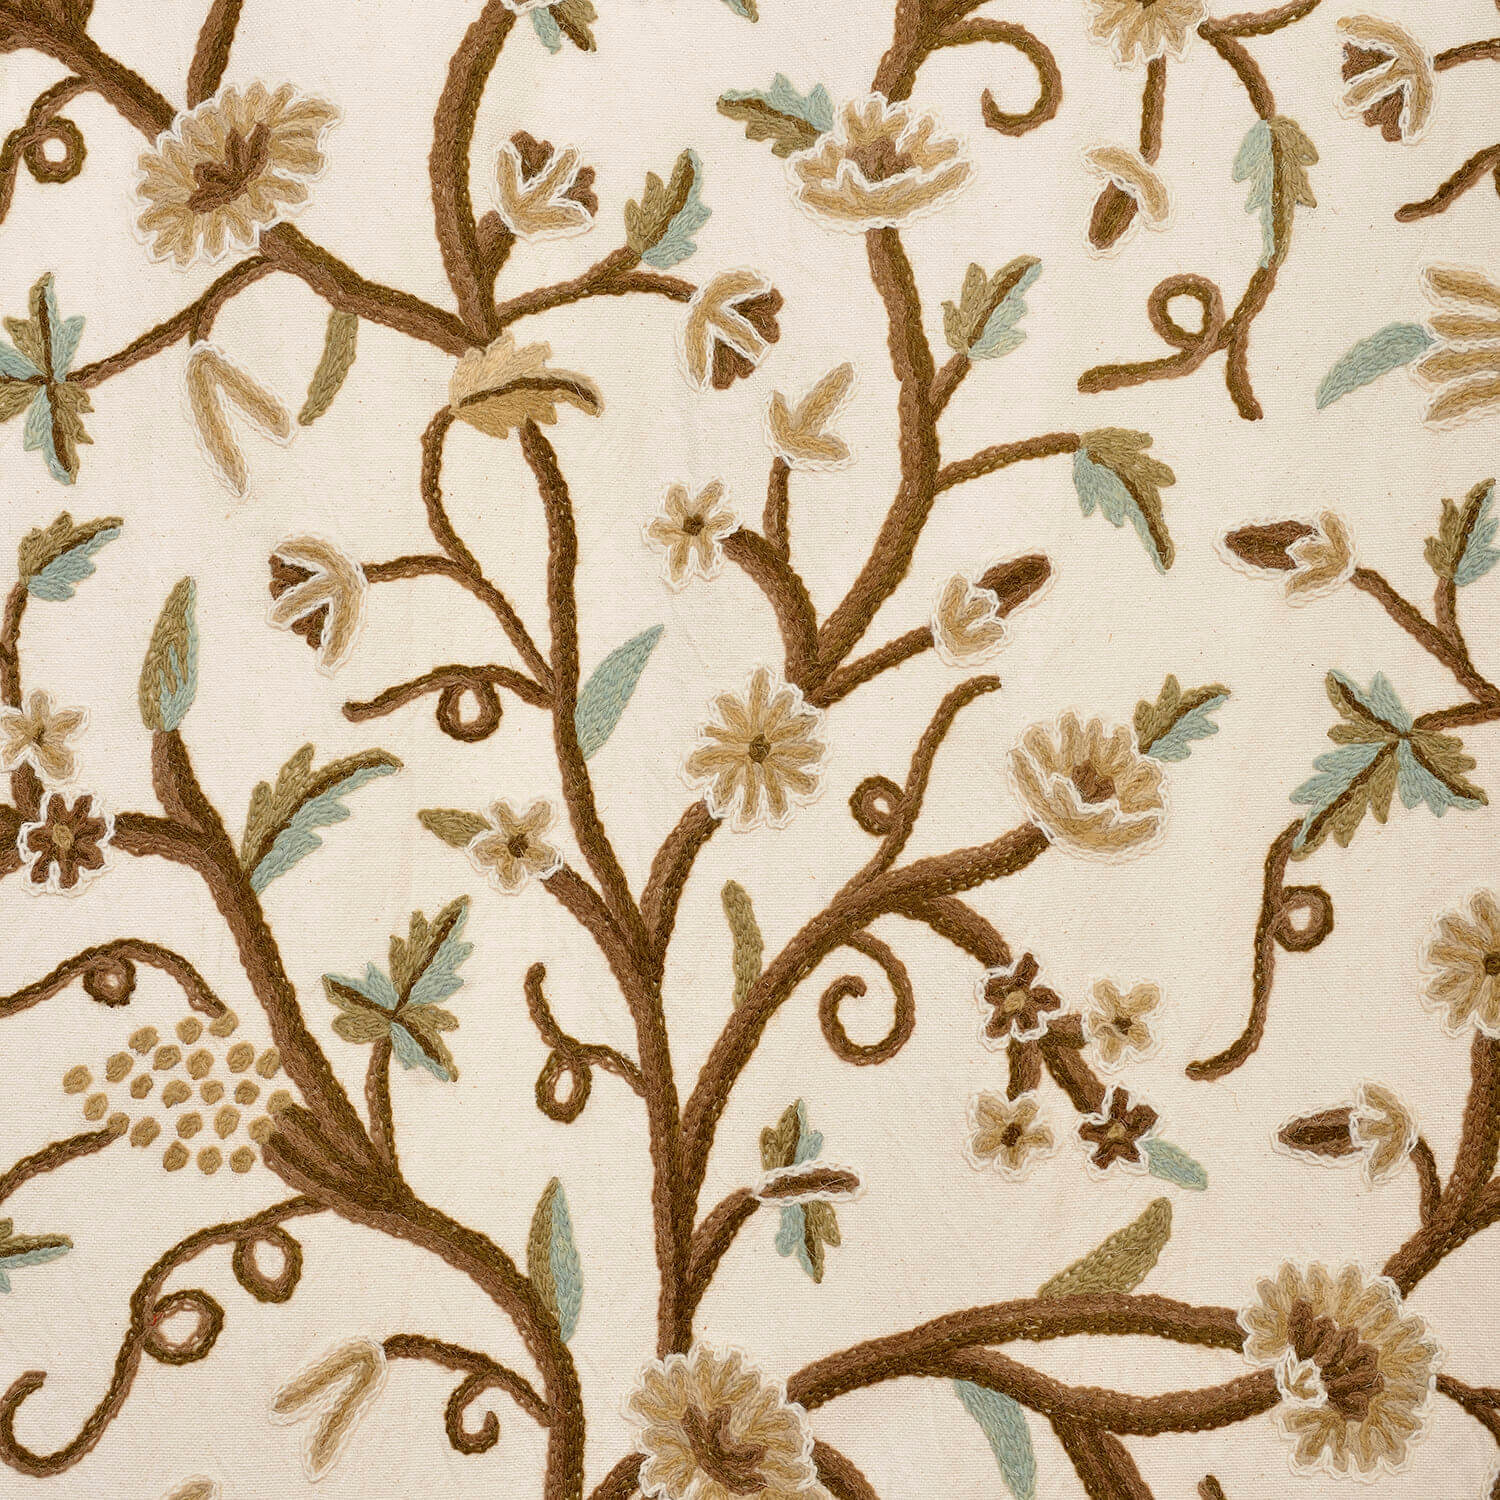 Frances Embroidered Cotton Crewel Fabric